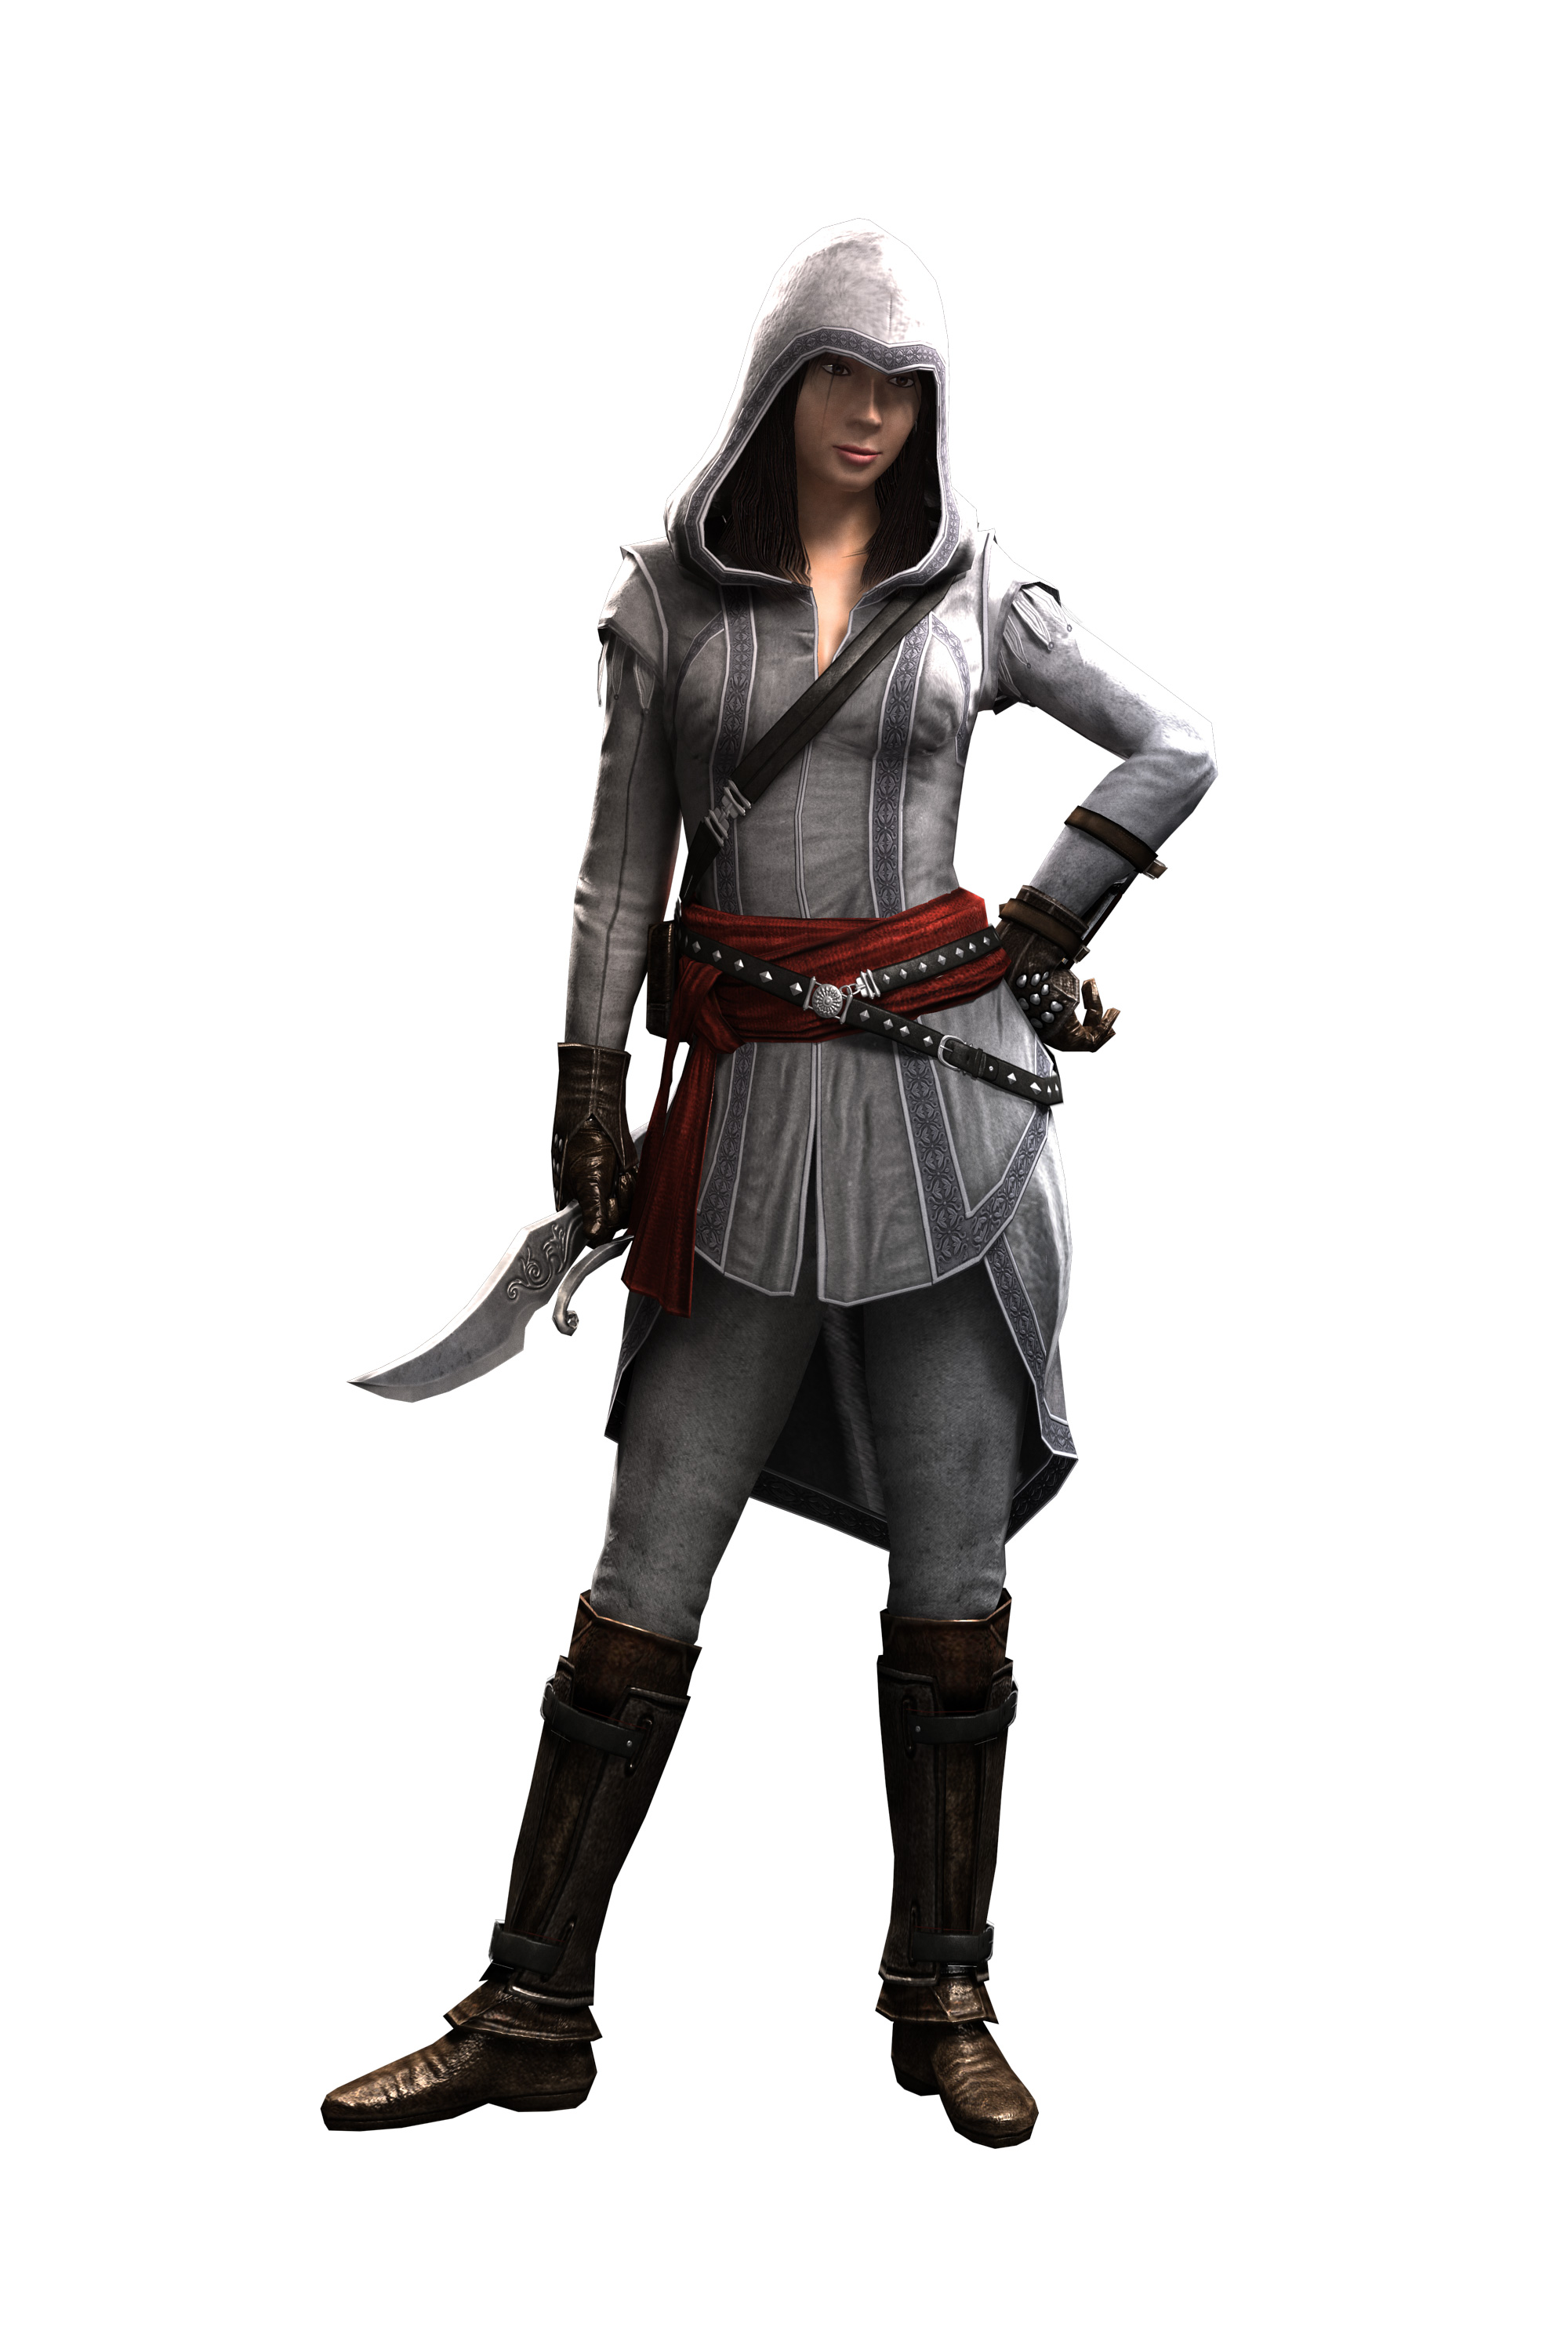 The ideal Assassins creed girl porn